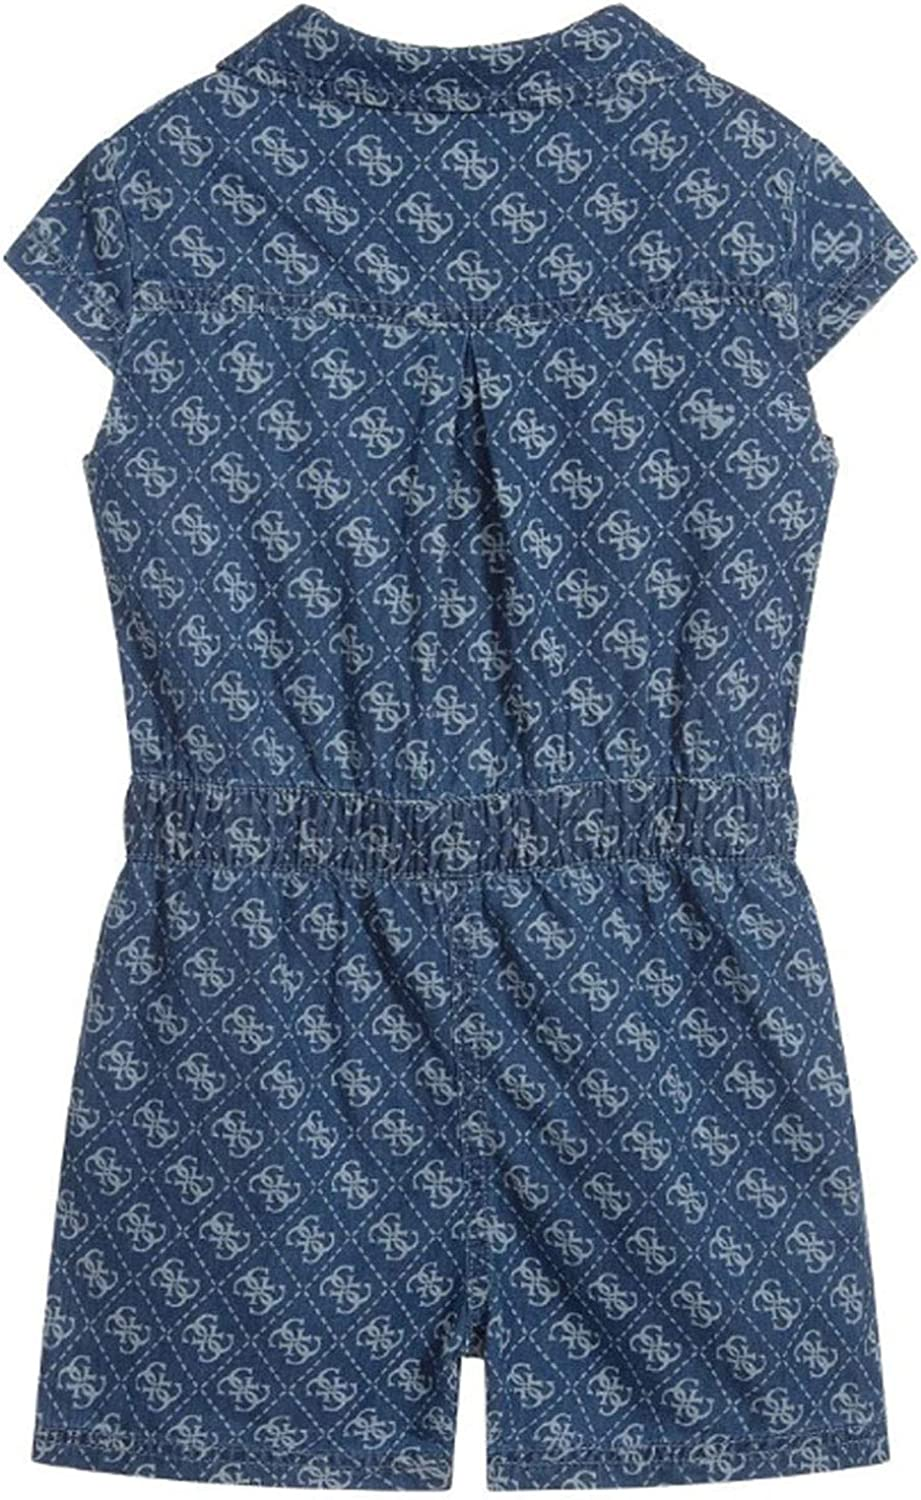 Guess Tutina Corta Shorts in Chambray Blu Denim Ragazza Bimba Bambina